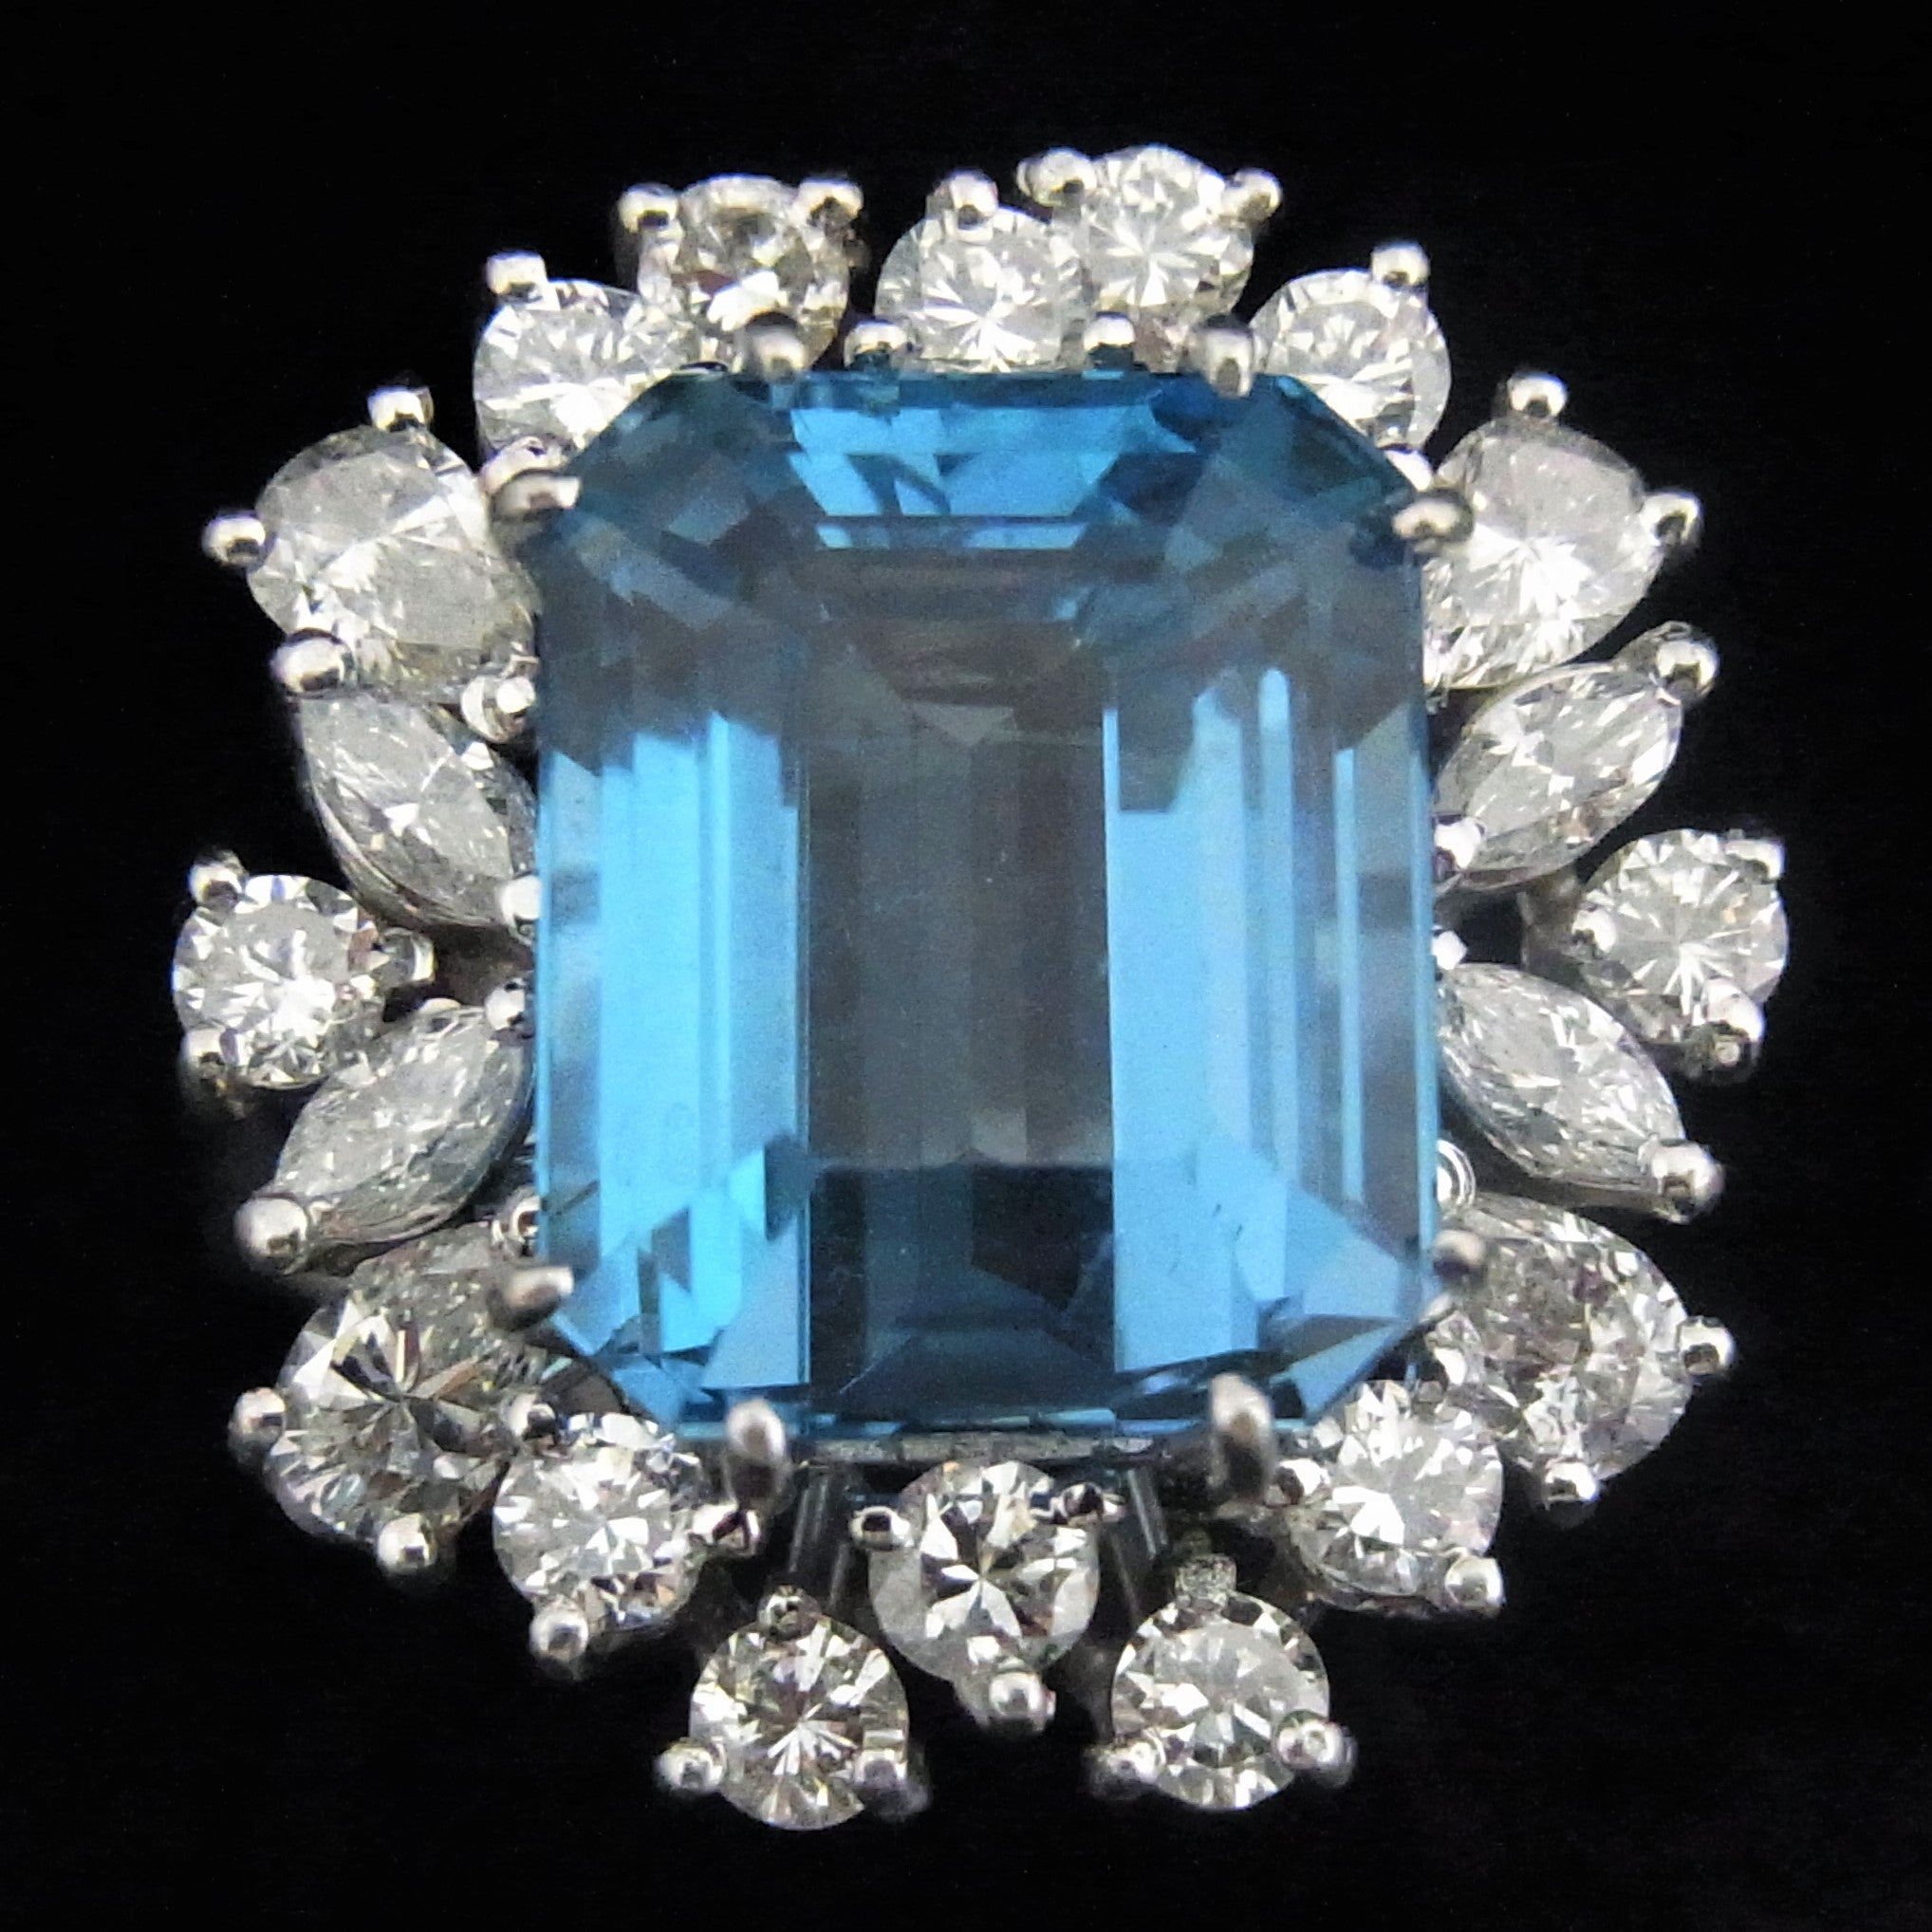 carat green surrounding blue is hope ultraviolet deep light with diamond its here the pendant red inside erie after an bombarded to glows shown exposure